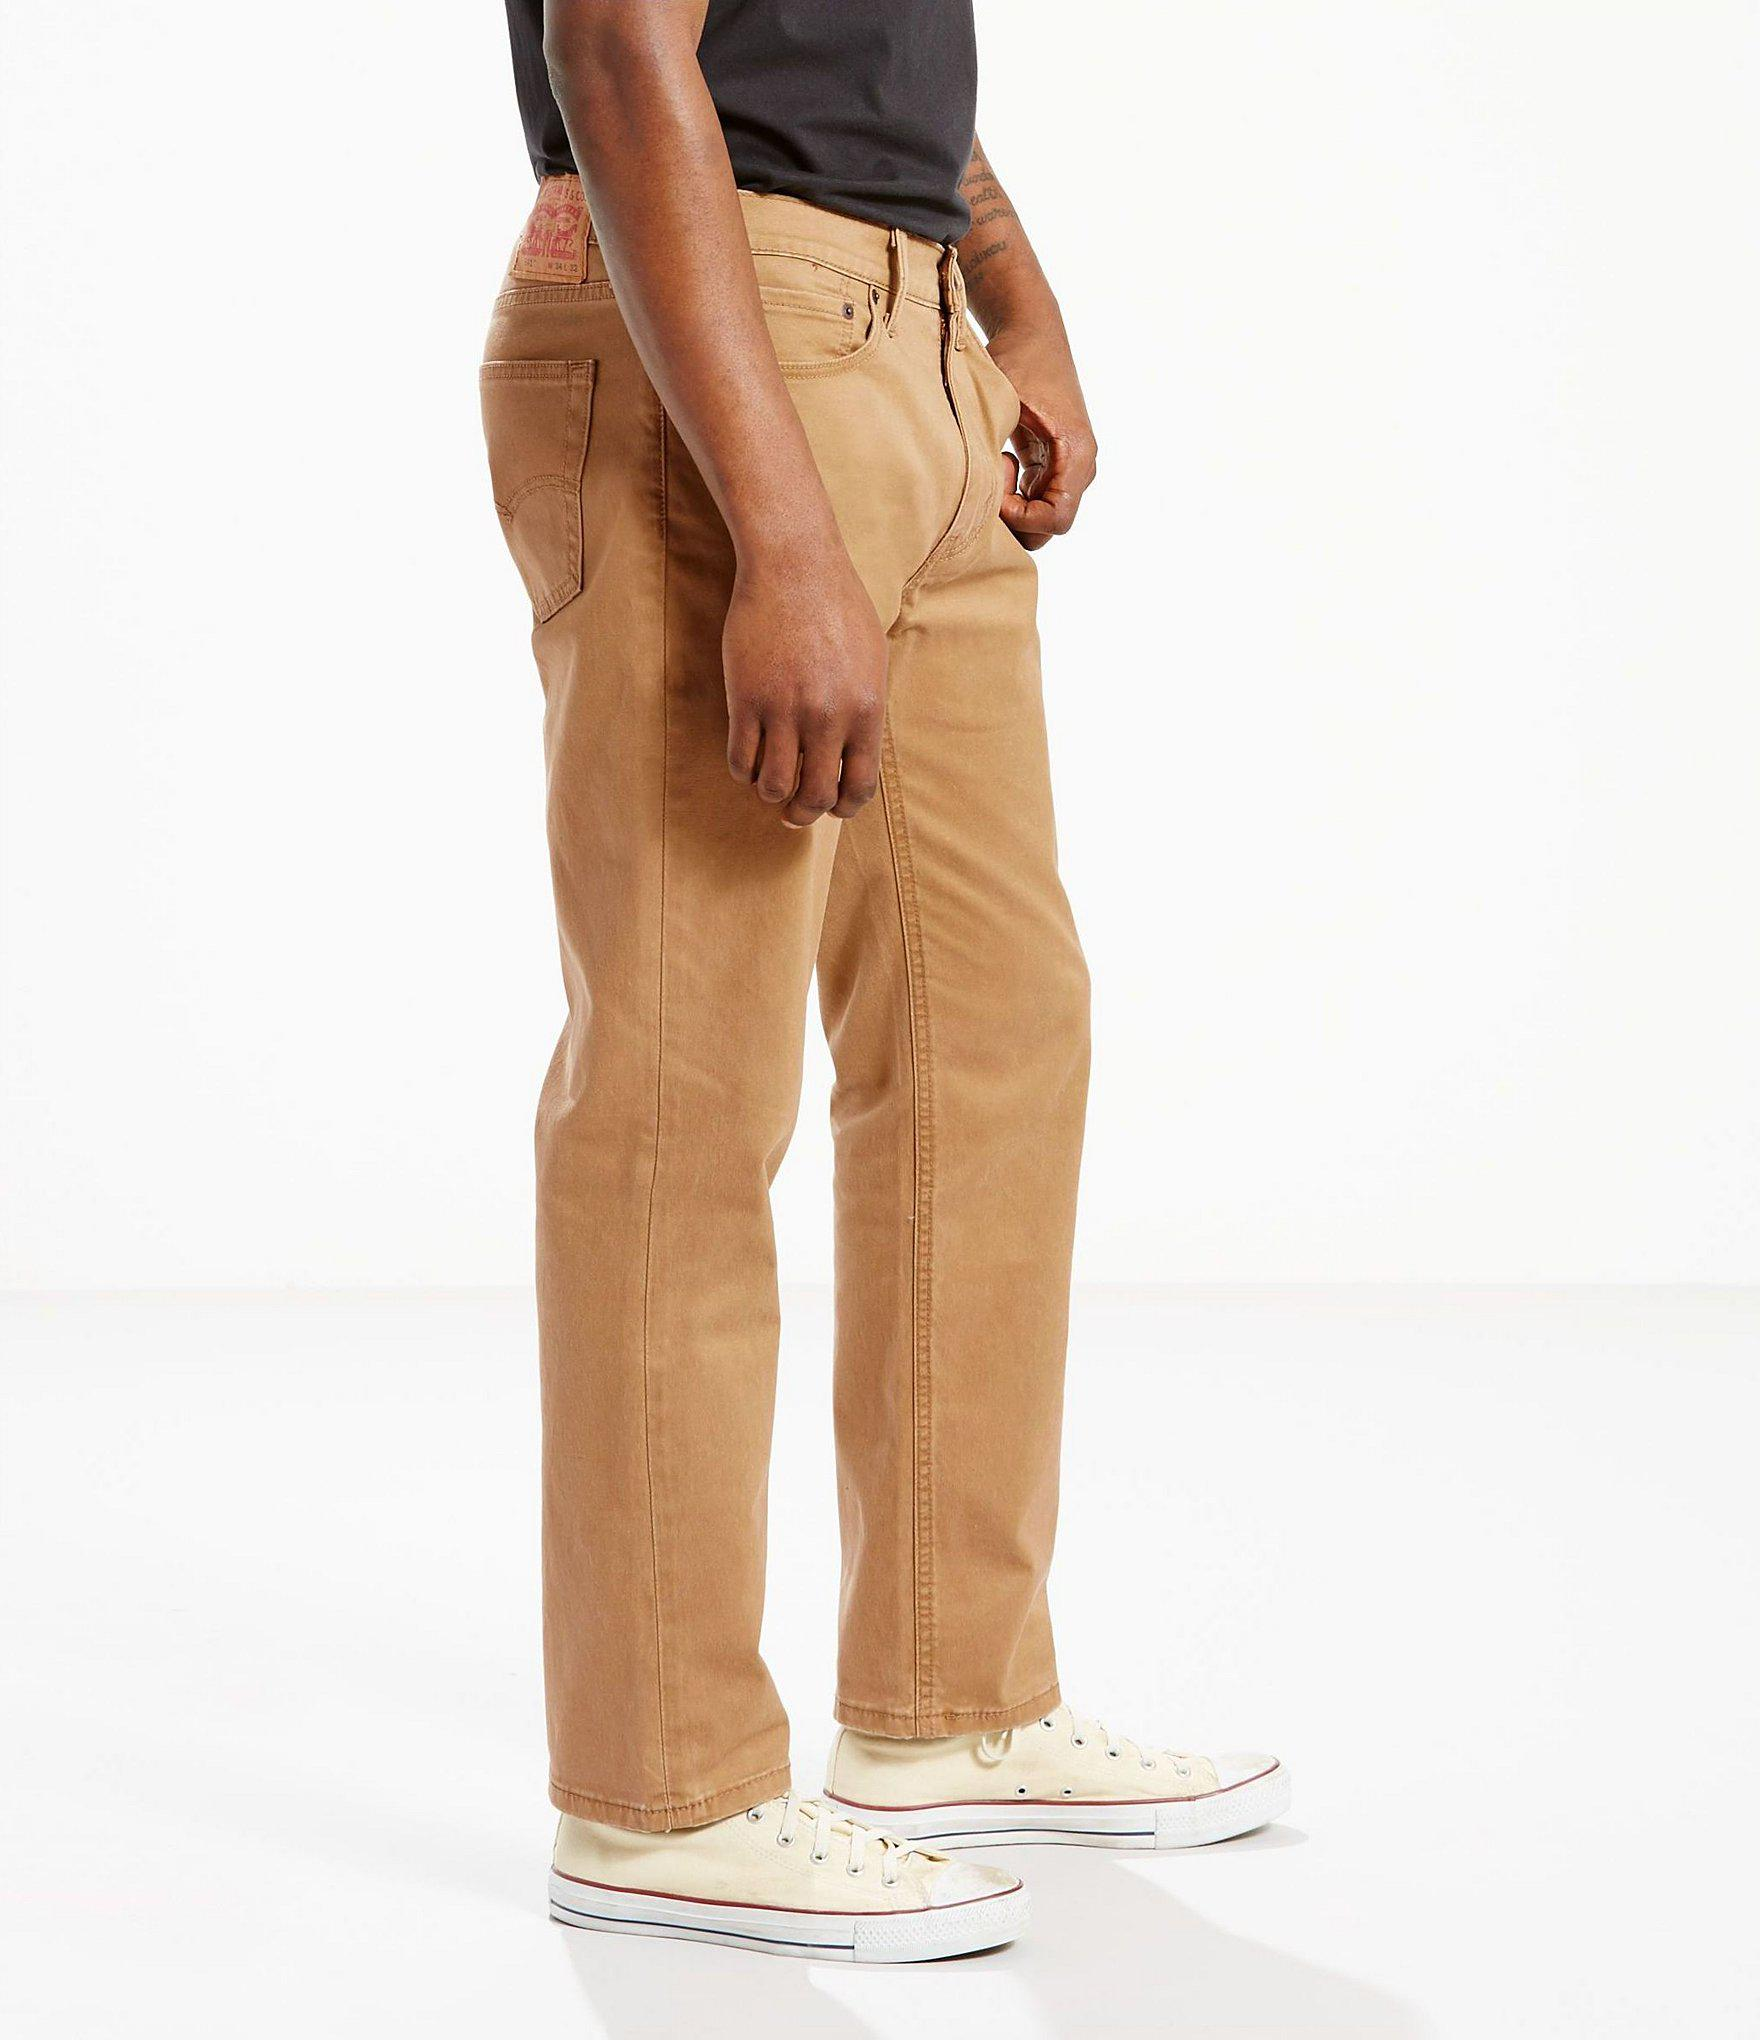 437e88dc87e Levi's - Brown 541 Athletic-fit Stretch Twill Flat Front Pants for Men -  Lyst. View fullscreen